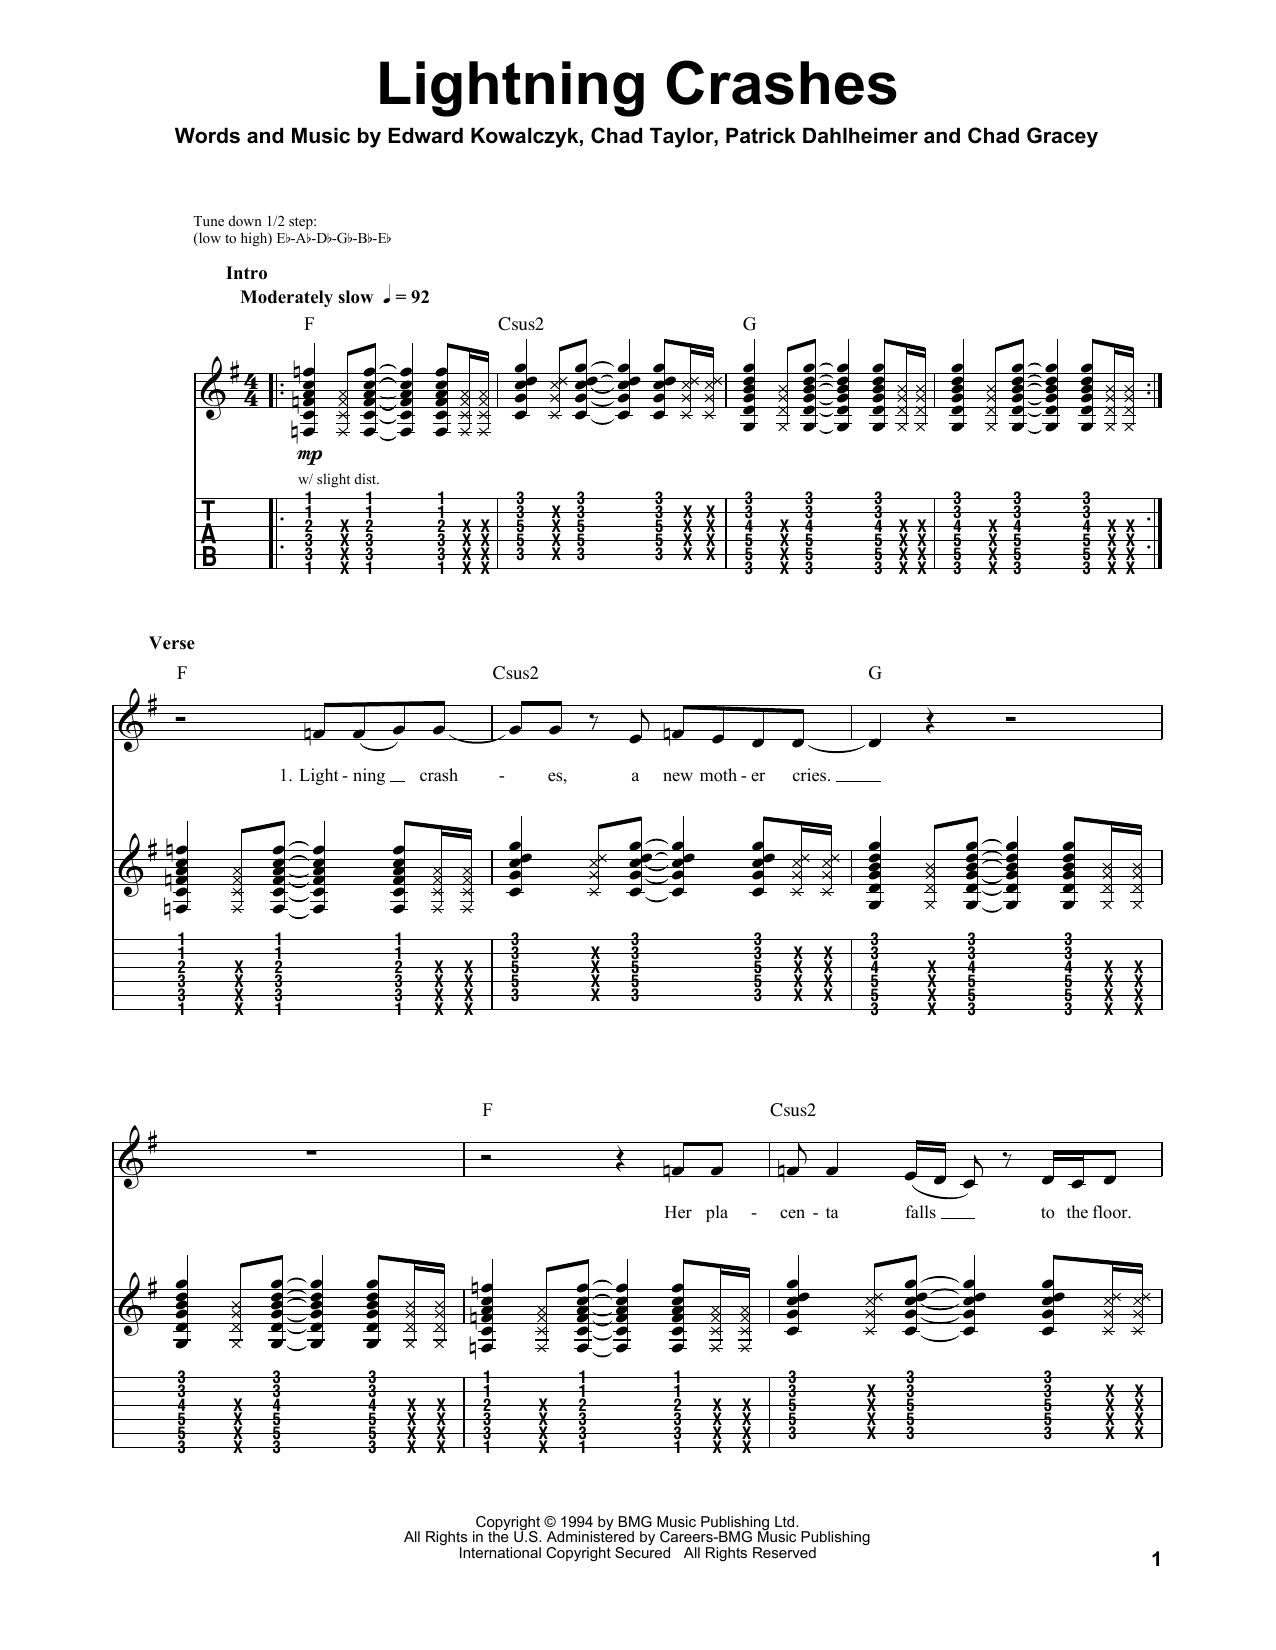 Live Lightning Crashes sheet music notes and chords